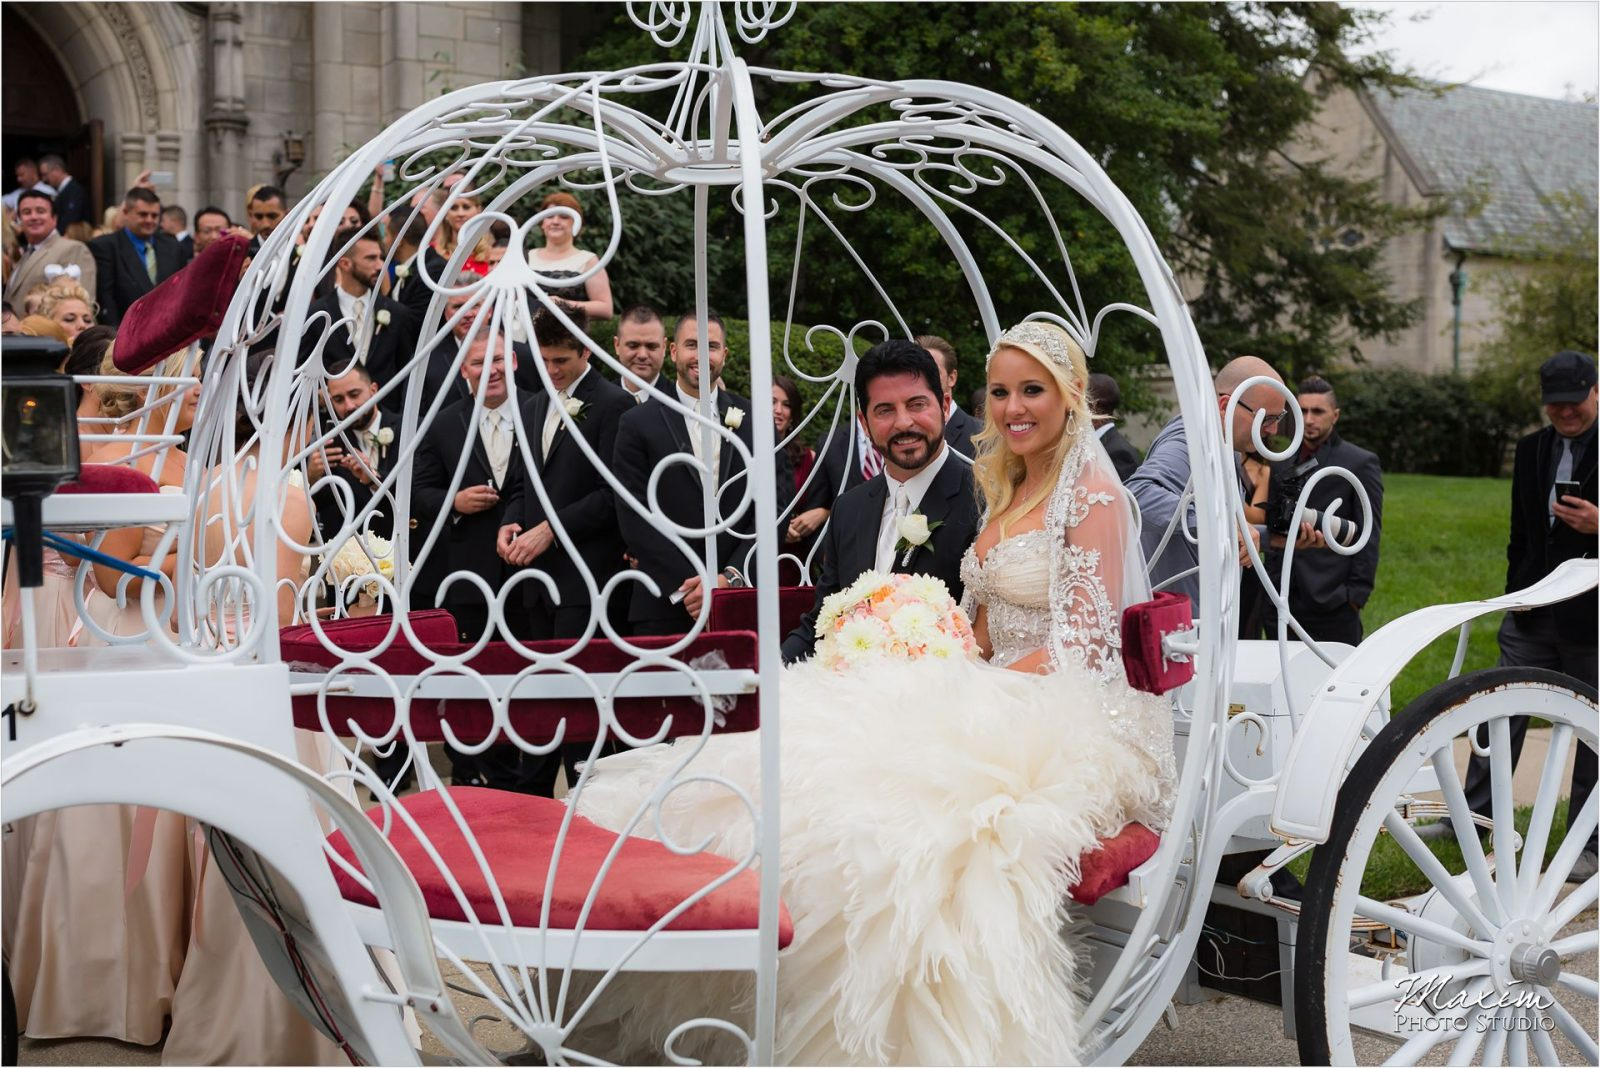 Cincinnati Wedding Photographers Hyde Park United Methodist Church Wedding bride groom horse carriage